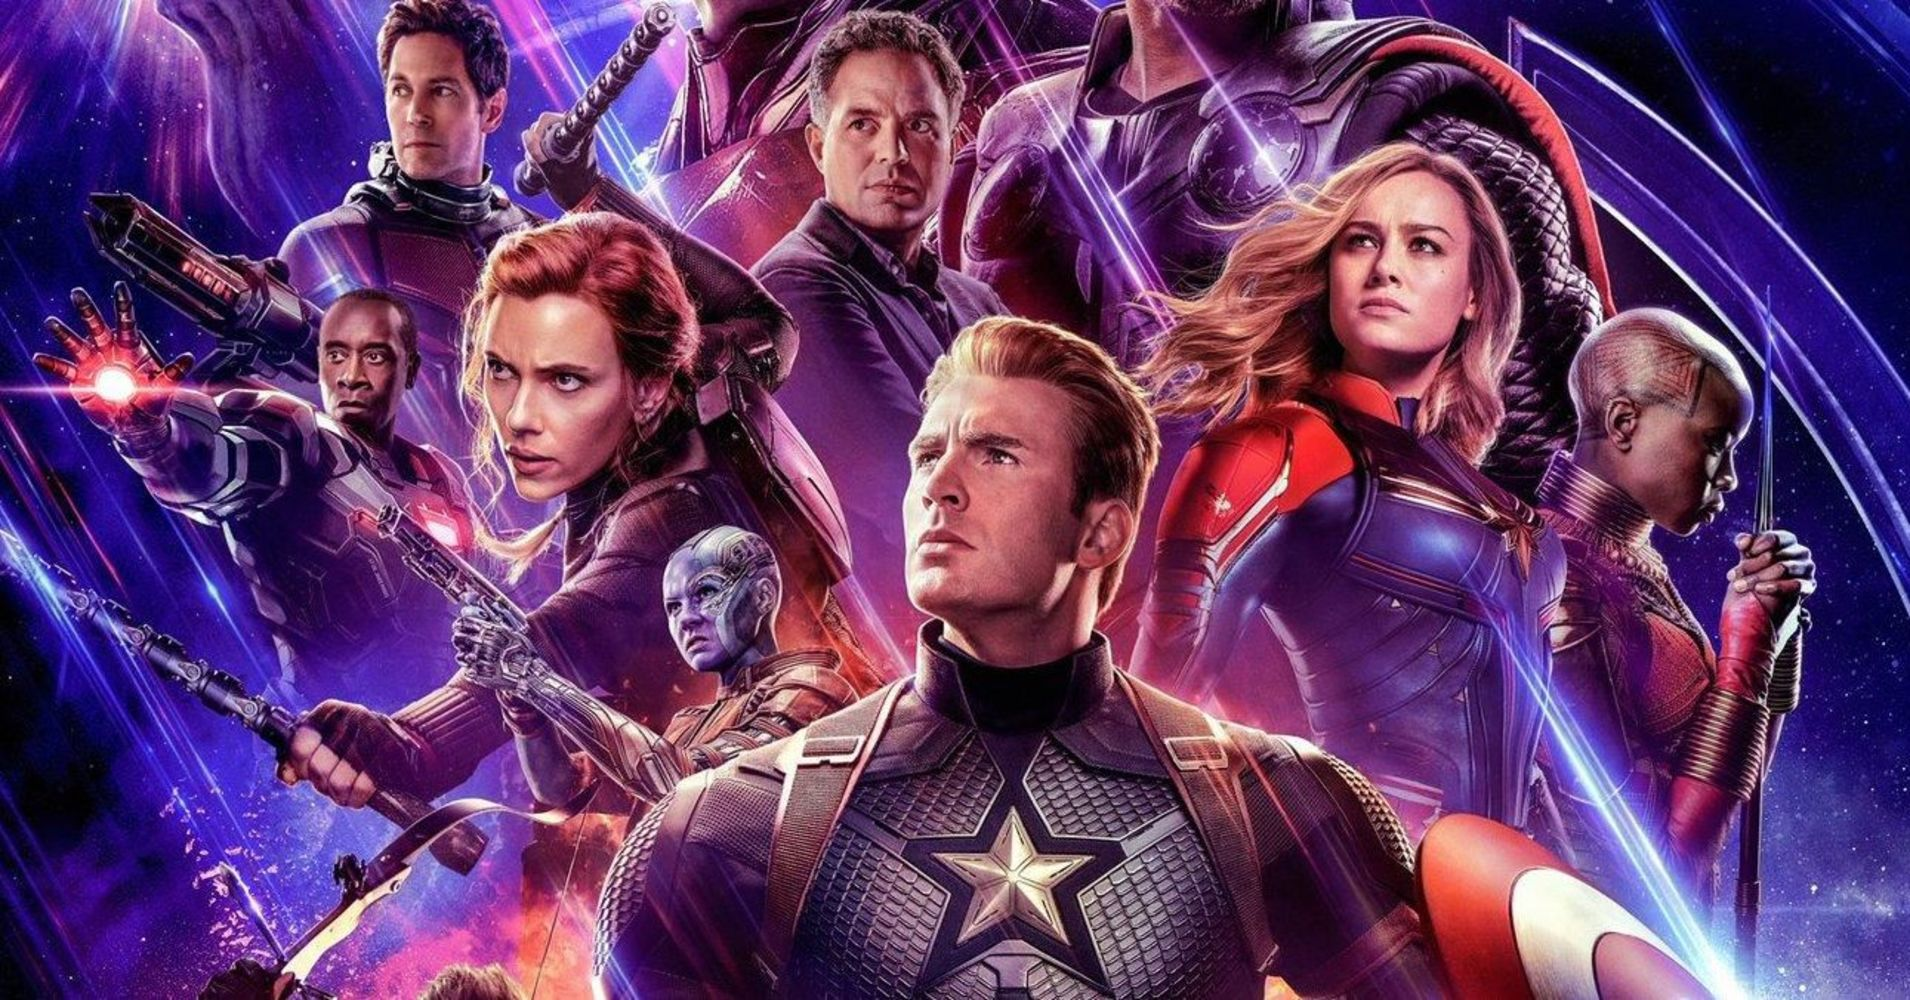 Endgame is smashing box office records, advance ticket sales